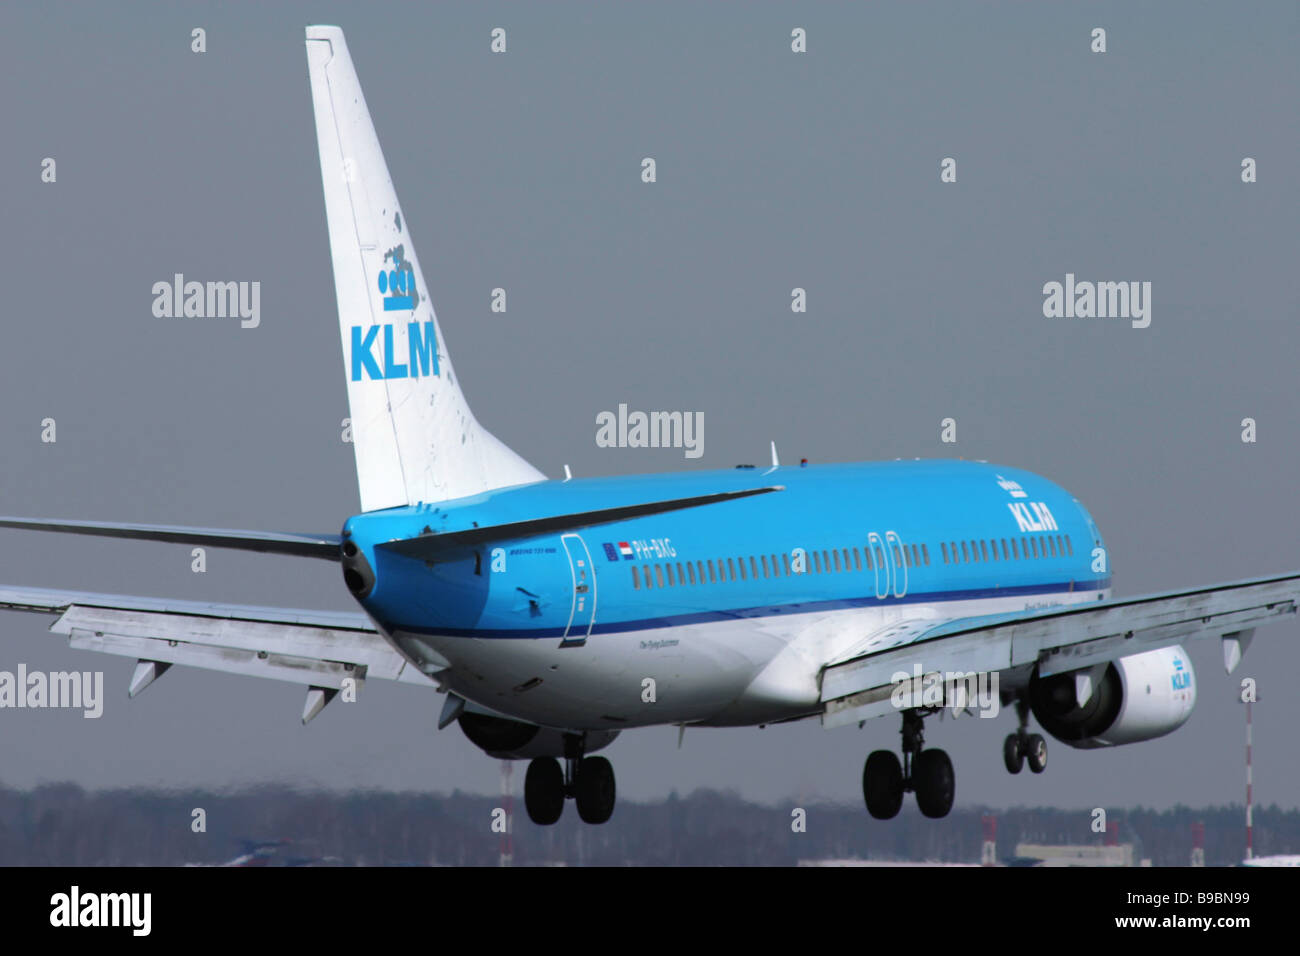 A KLM Royal Dutch Airlines Boeing 737 800 passenger airliner - Stock Image